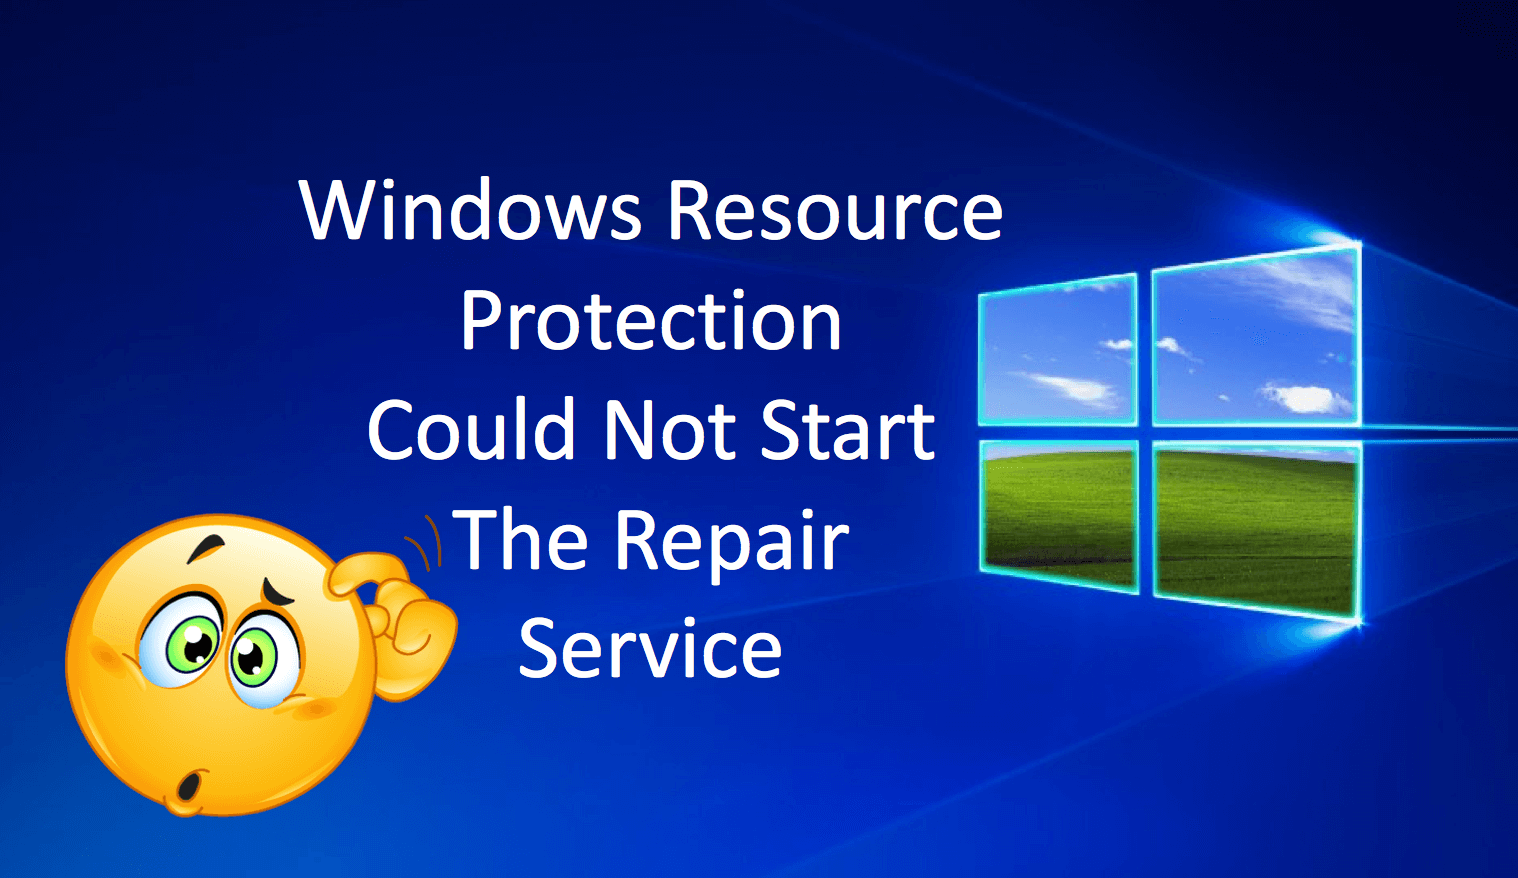 Windows-Resource-Protection-Could-Not-Start-The-Repair-Service